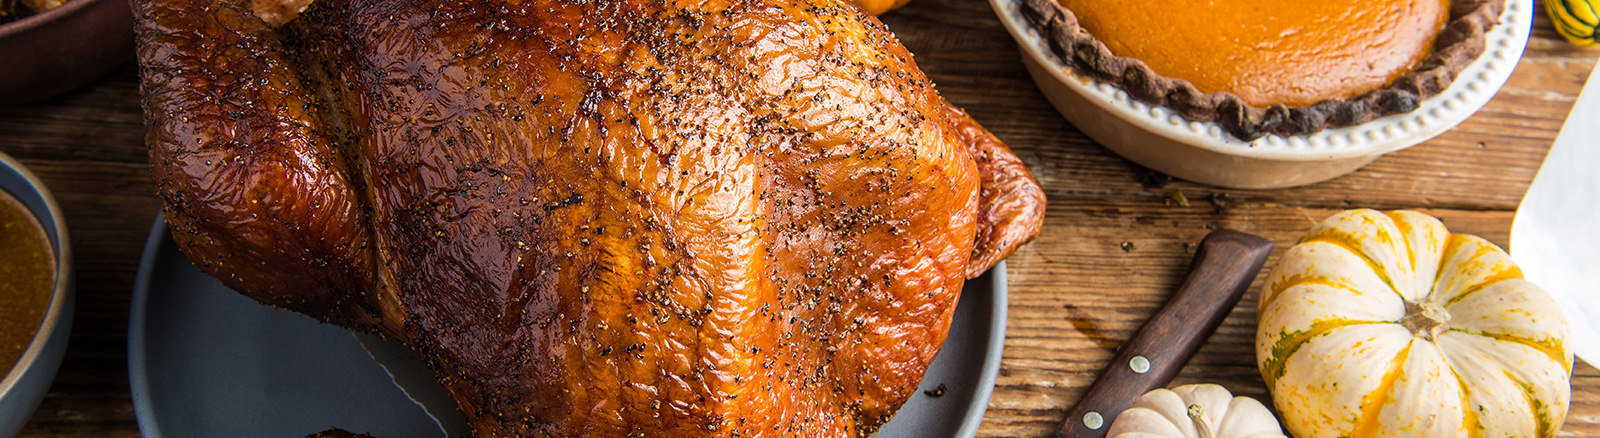 Traeger Recipe - Ultimate Smoked Turkey Traeger Wood Pellet Grills